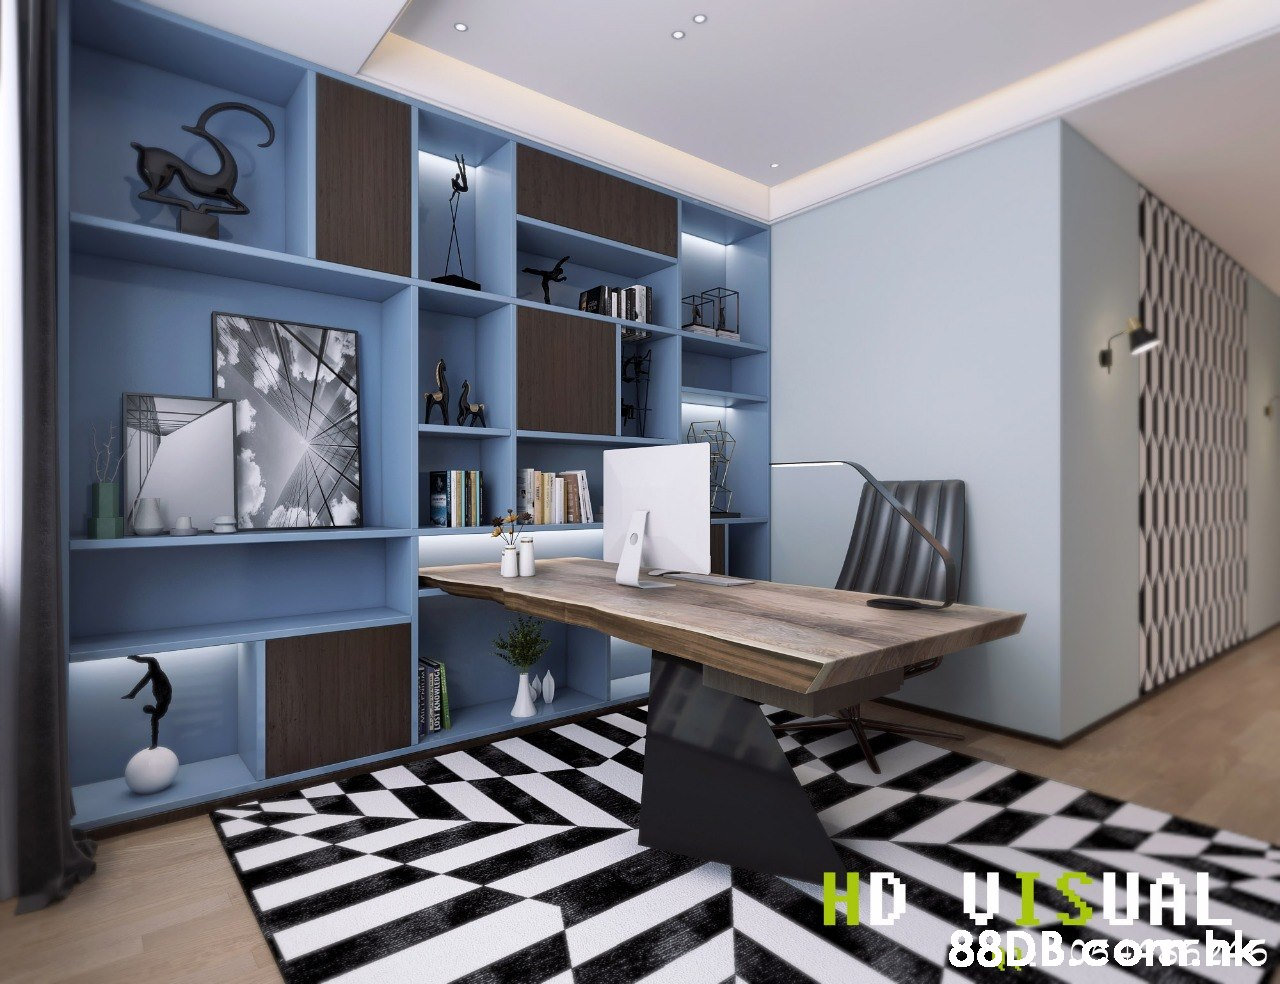 H IA 88DBcconah  Room,Furniture,Interior design,Living room,Shelf